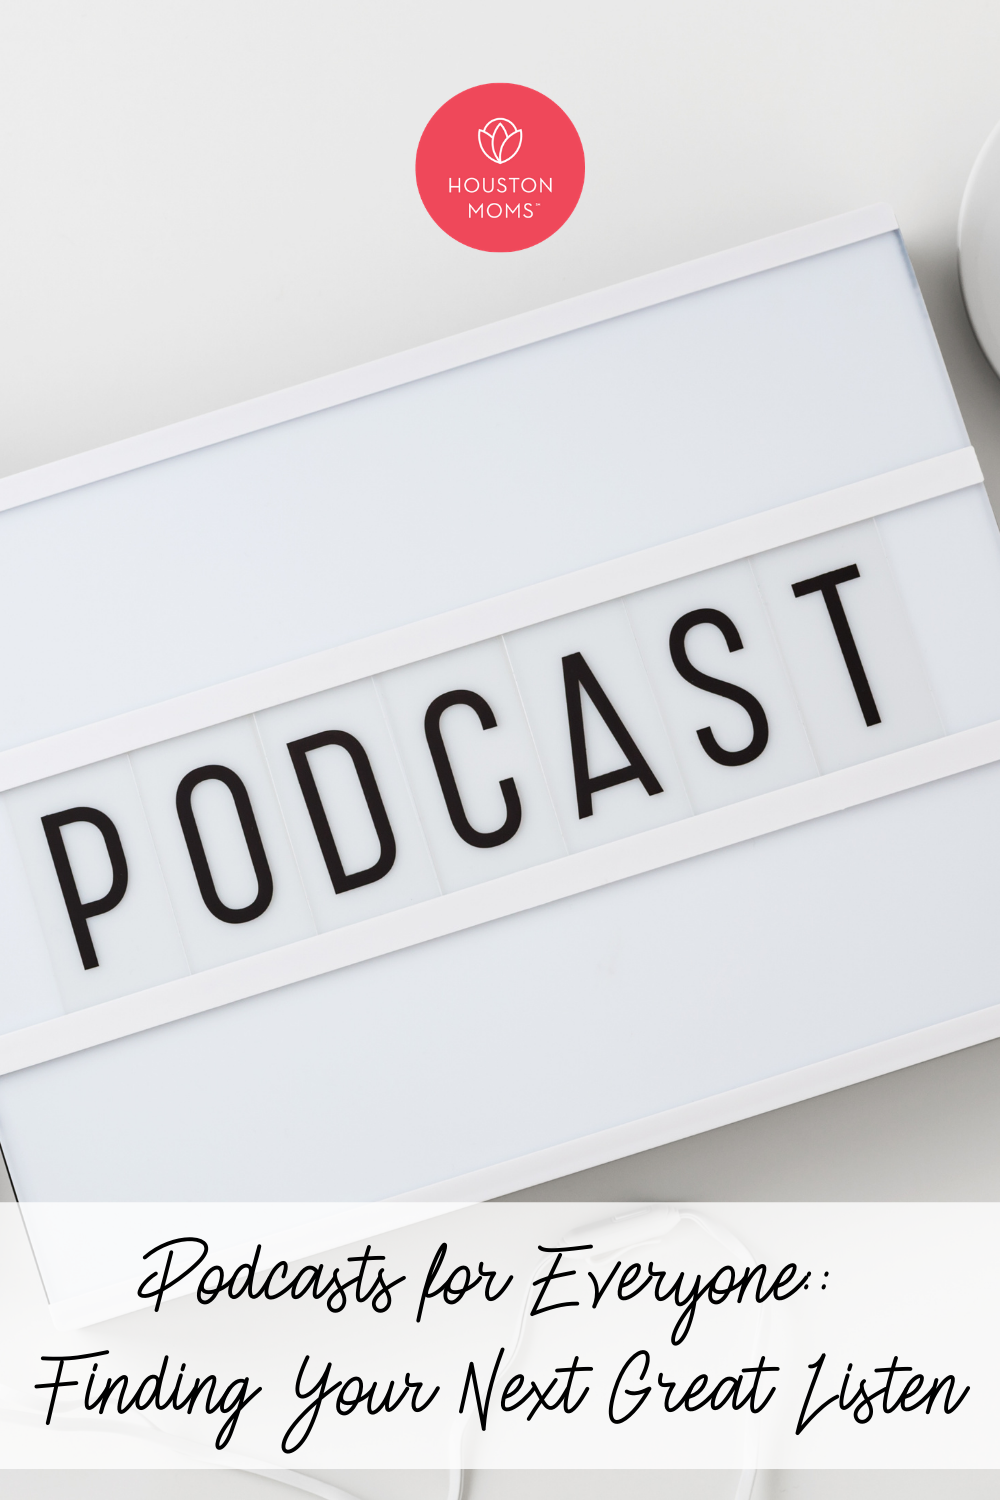 "Houston Moms ""Podcasts for Everyone:: Finding Your Next Great Listen"" #houstonmoms #houstonmomsblog #momsaroundhouston"